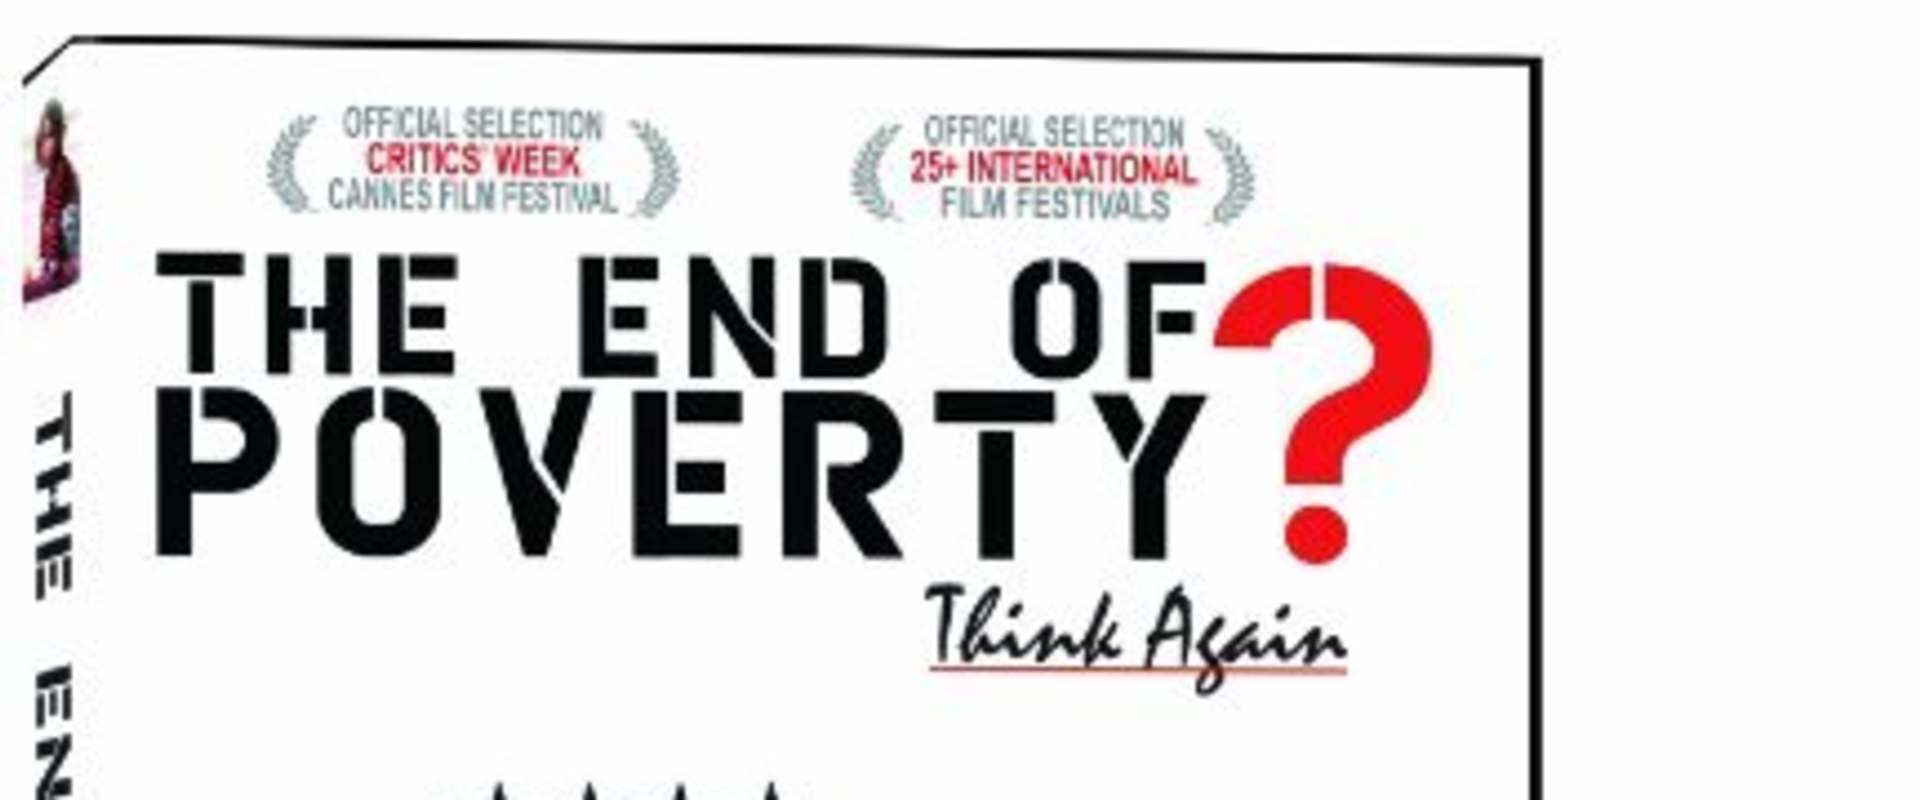 The End of Poverty? background 1